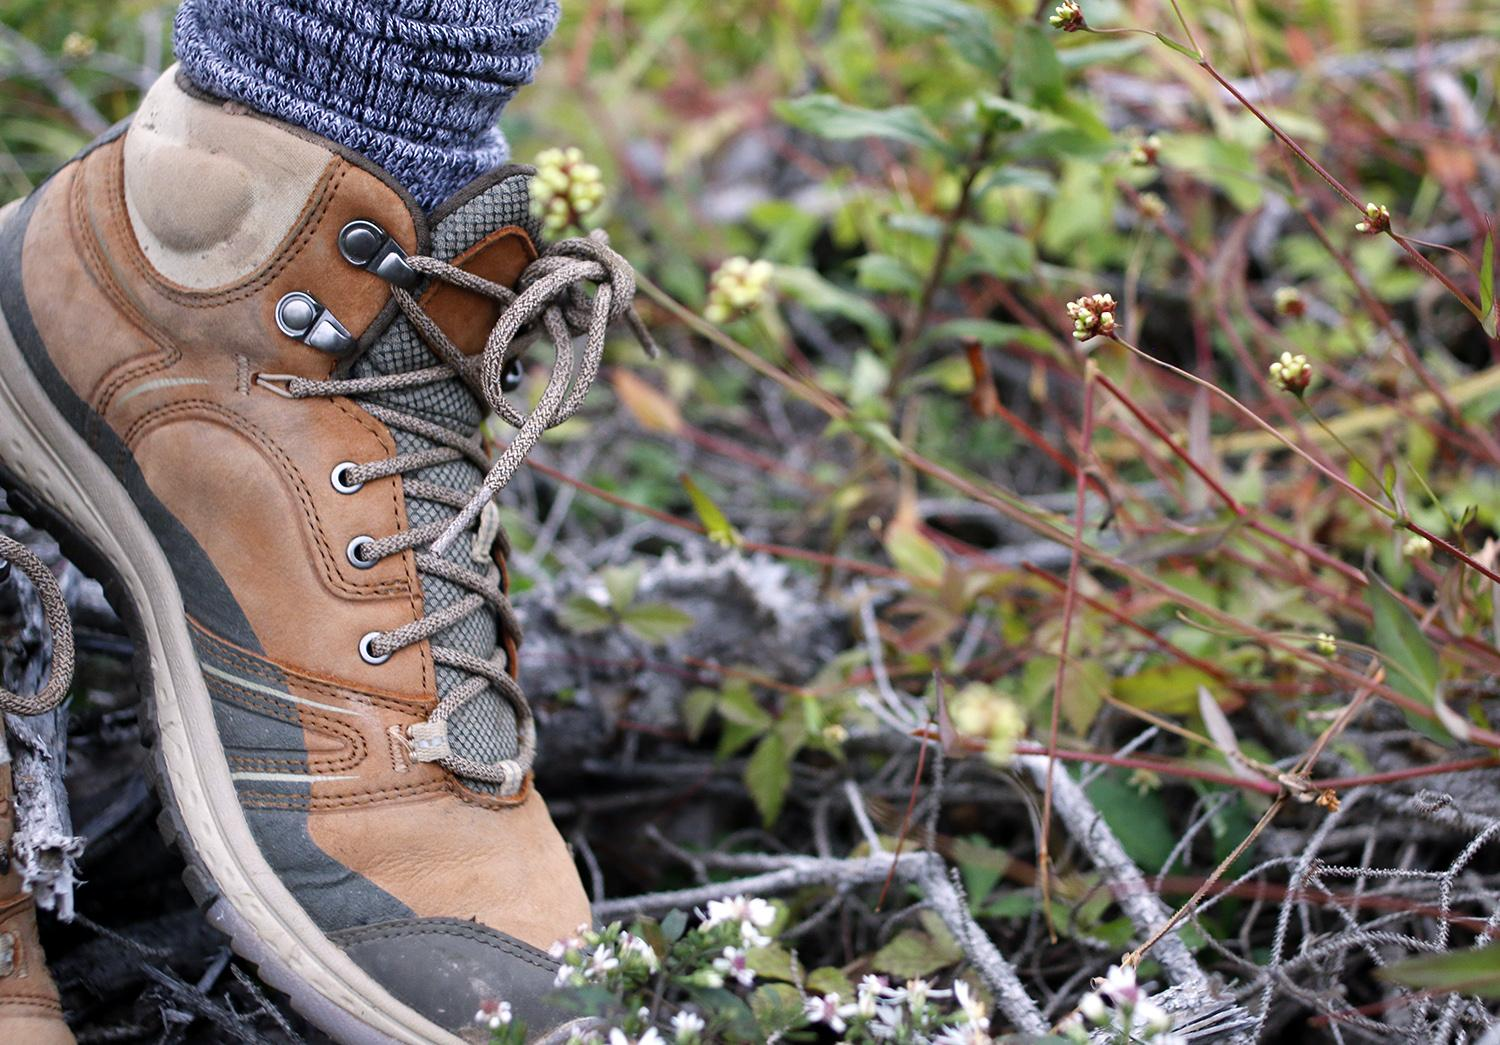 Review: Keen Terradora leather hiking boots